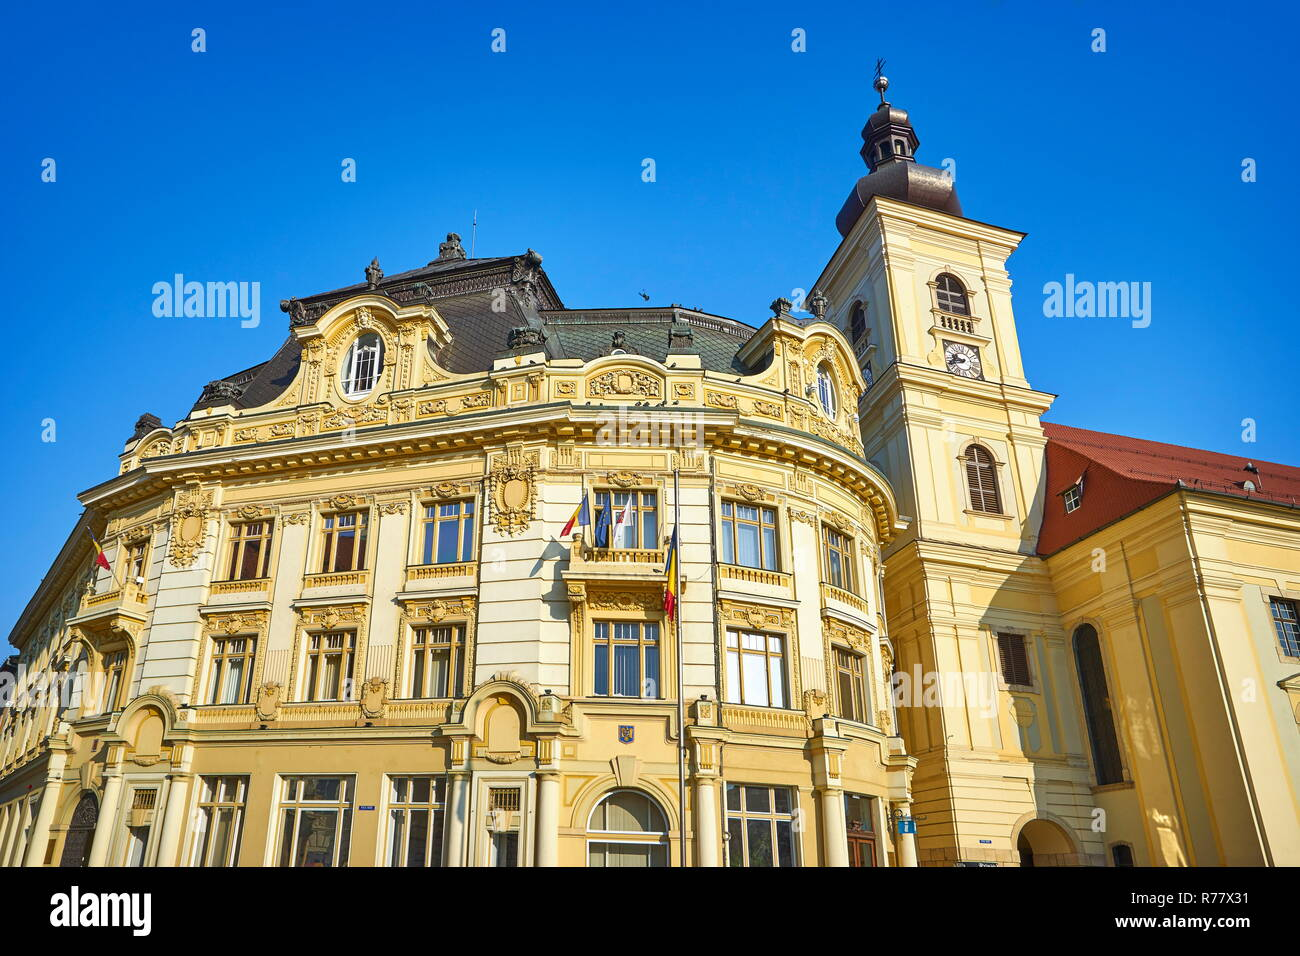 City Hall in Large Square, Sibiu, Transylvania, Romania. - Stock Image